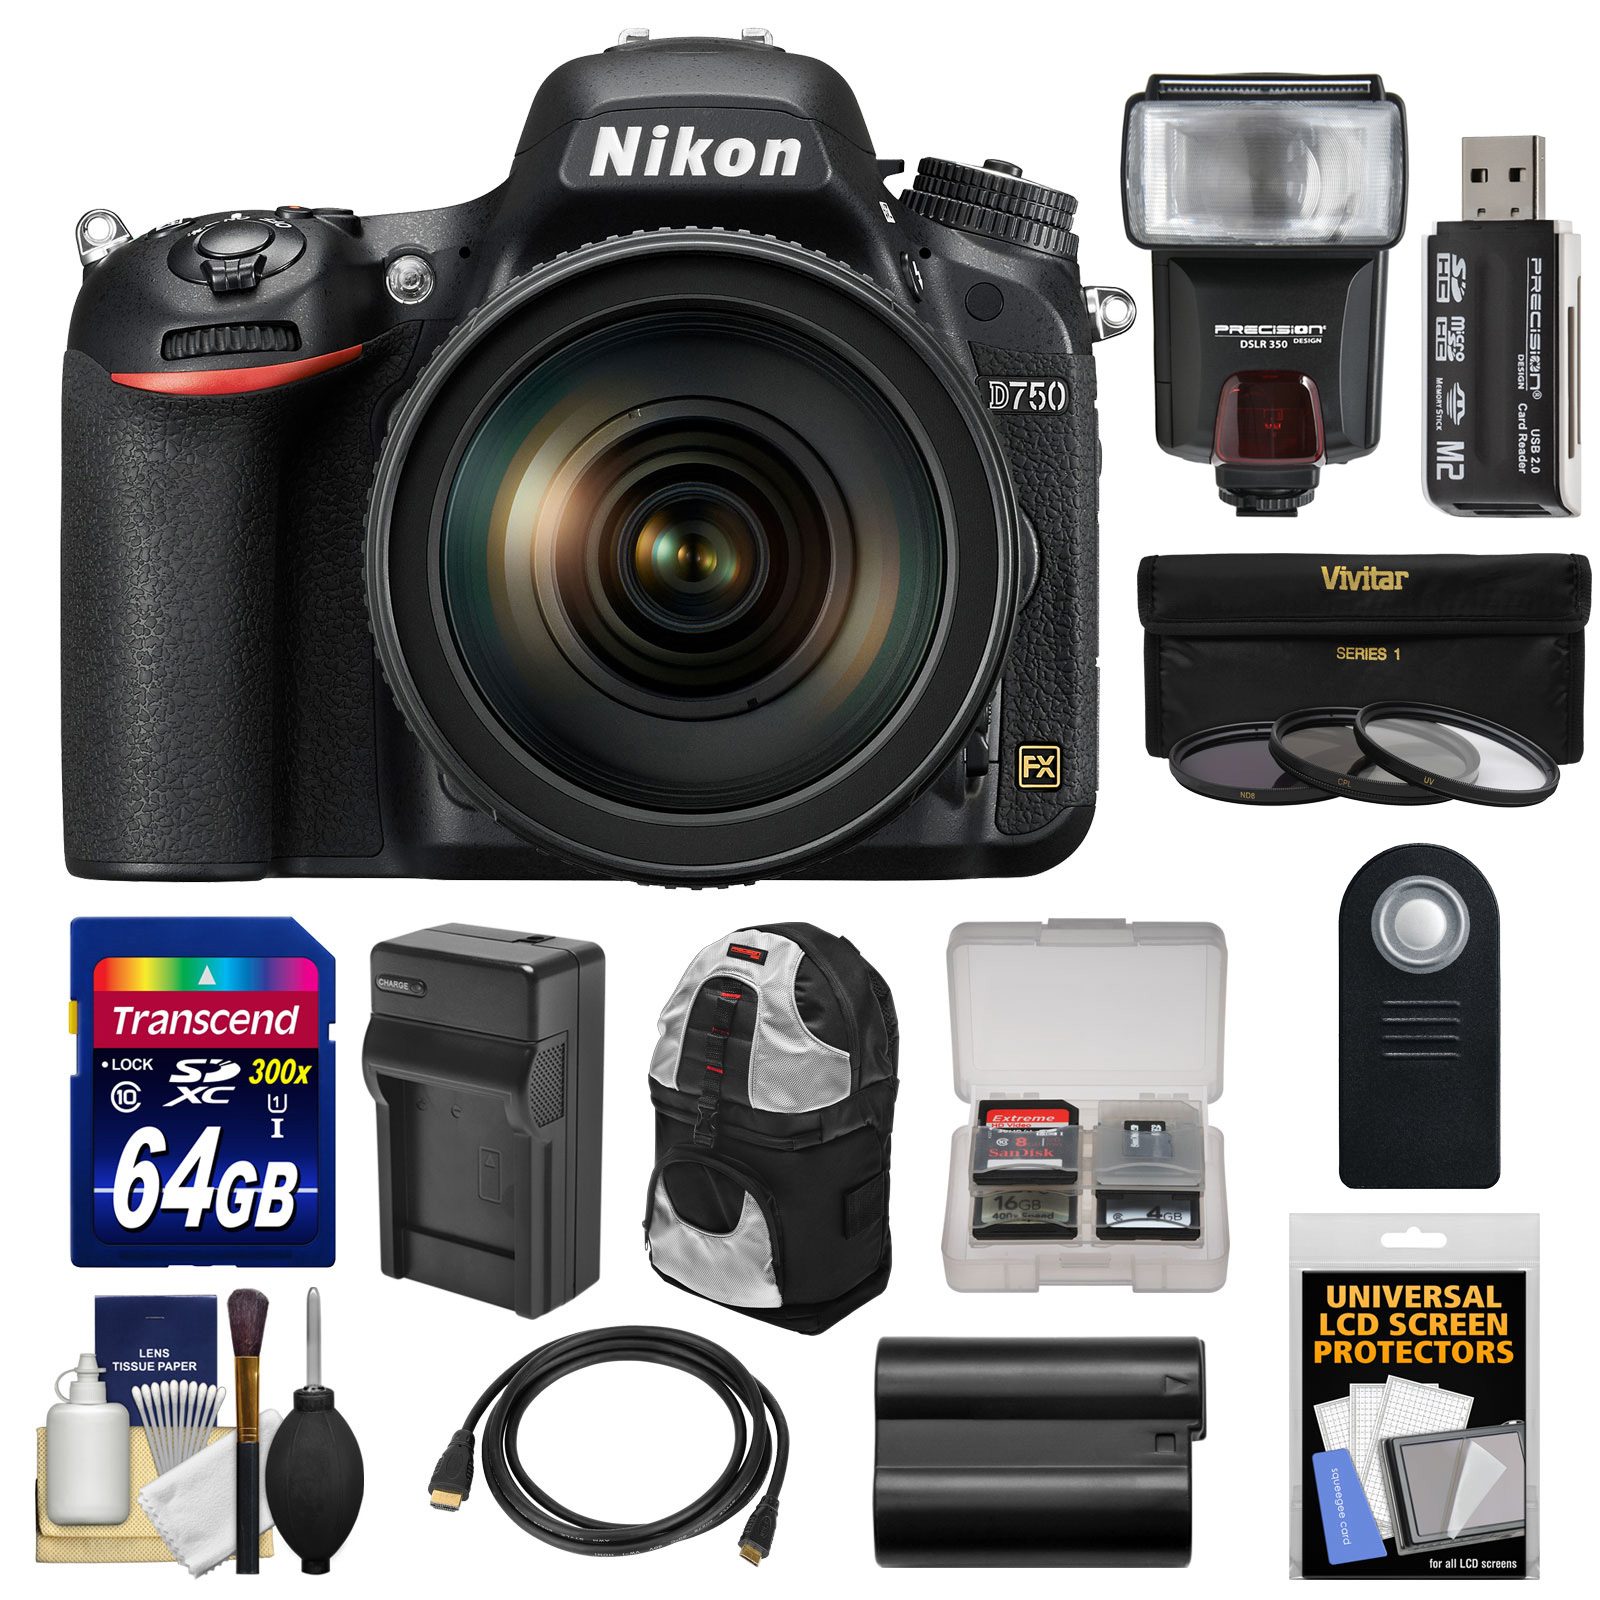 Nikon D750 Digital SLR Camera & 24-120mm f 4 VR Lens with 64GB Card + Battery & Charger + Backpack + 3 Filters... by Nikon